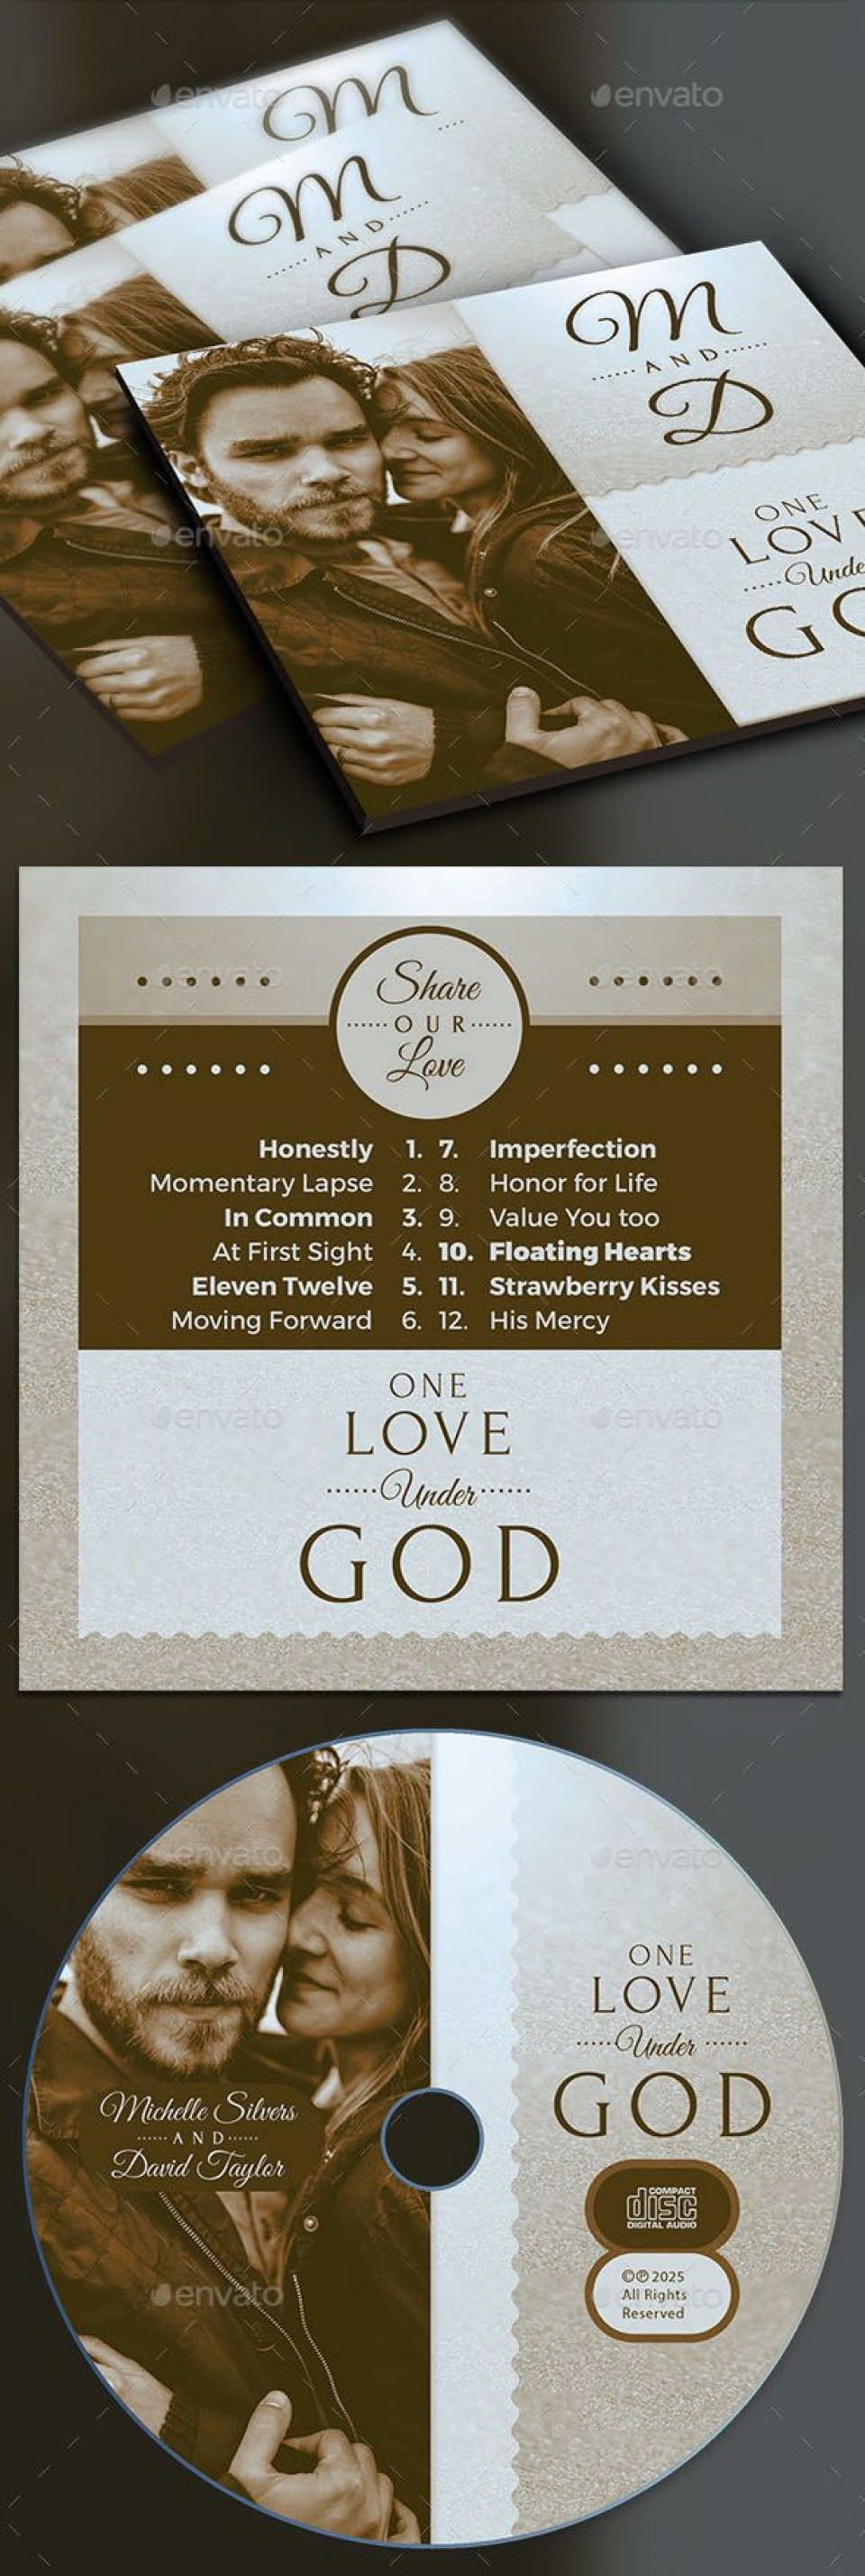 004 Beautiful Wedding Cd Cover Design Template Free Download Example 960